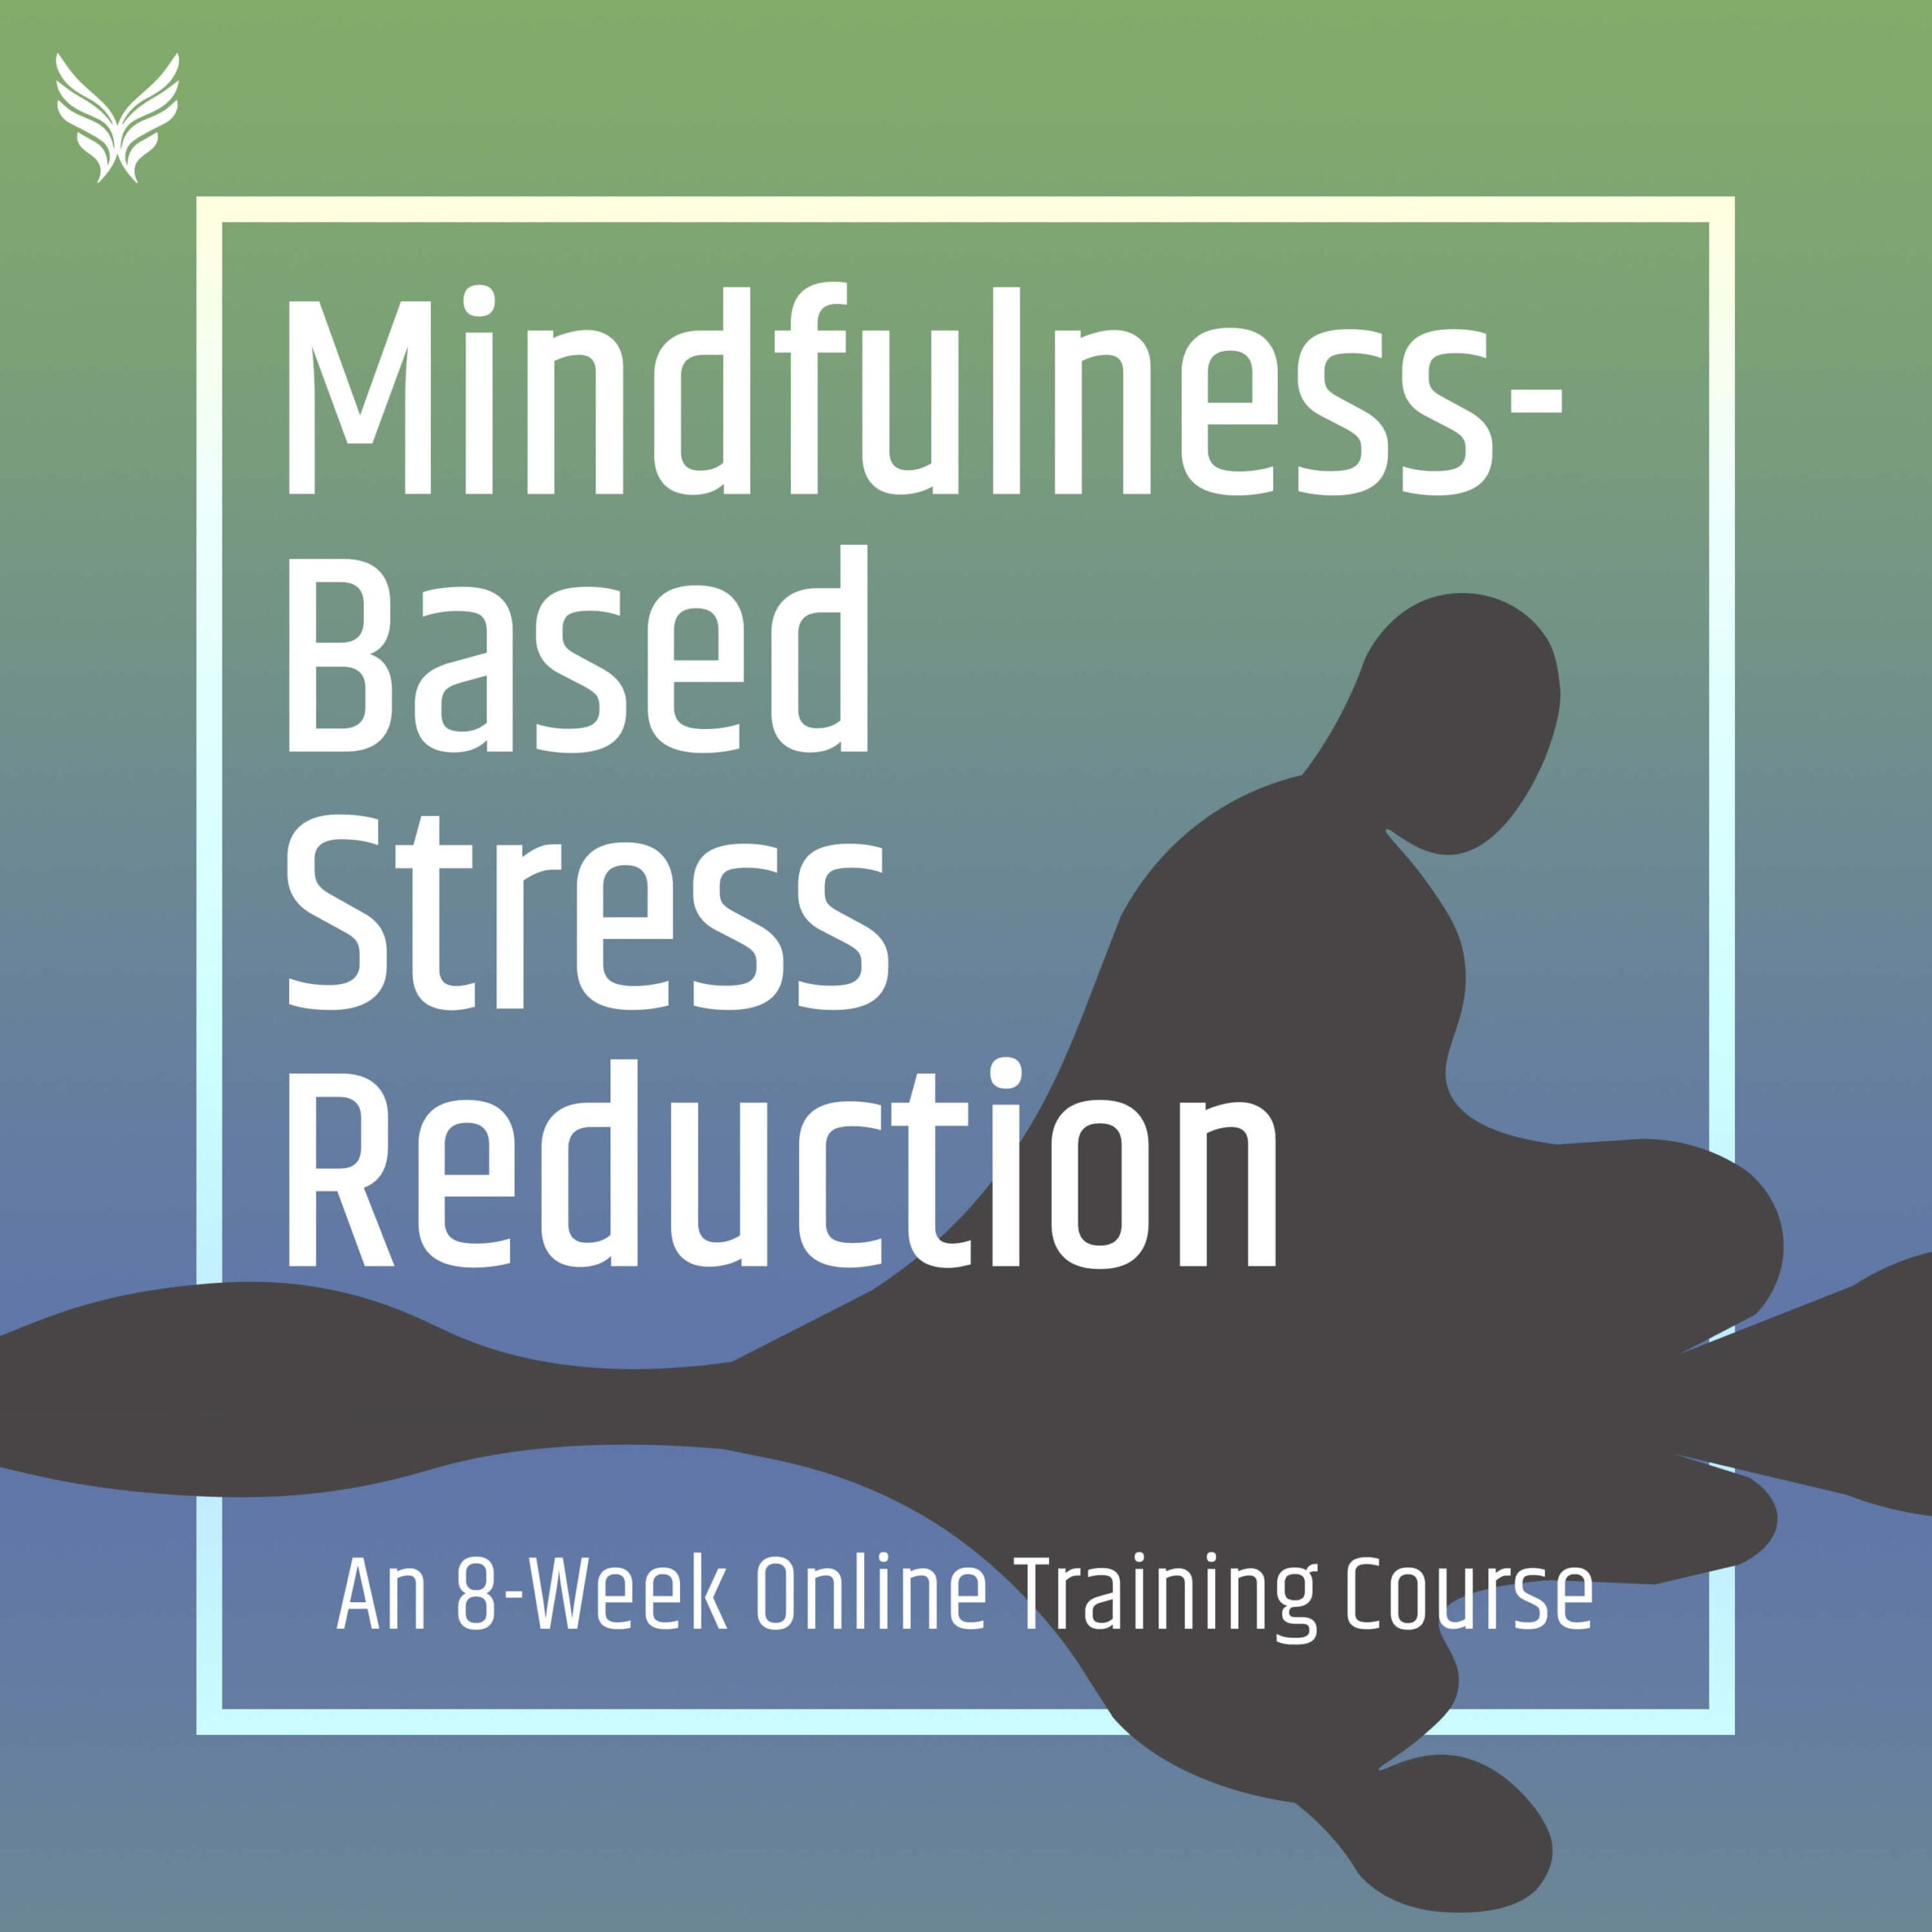 Mindfulness Based Stress Reduction Course sound true